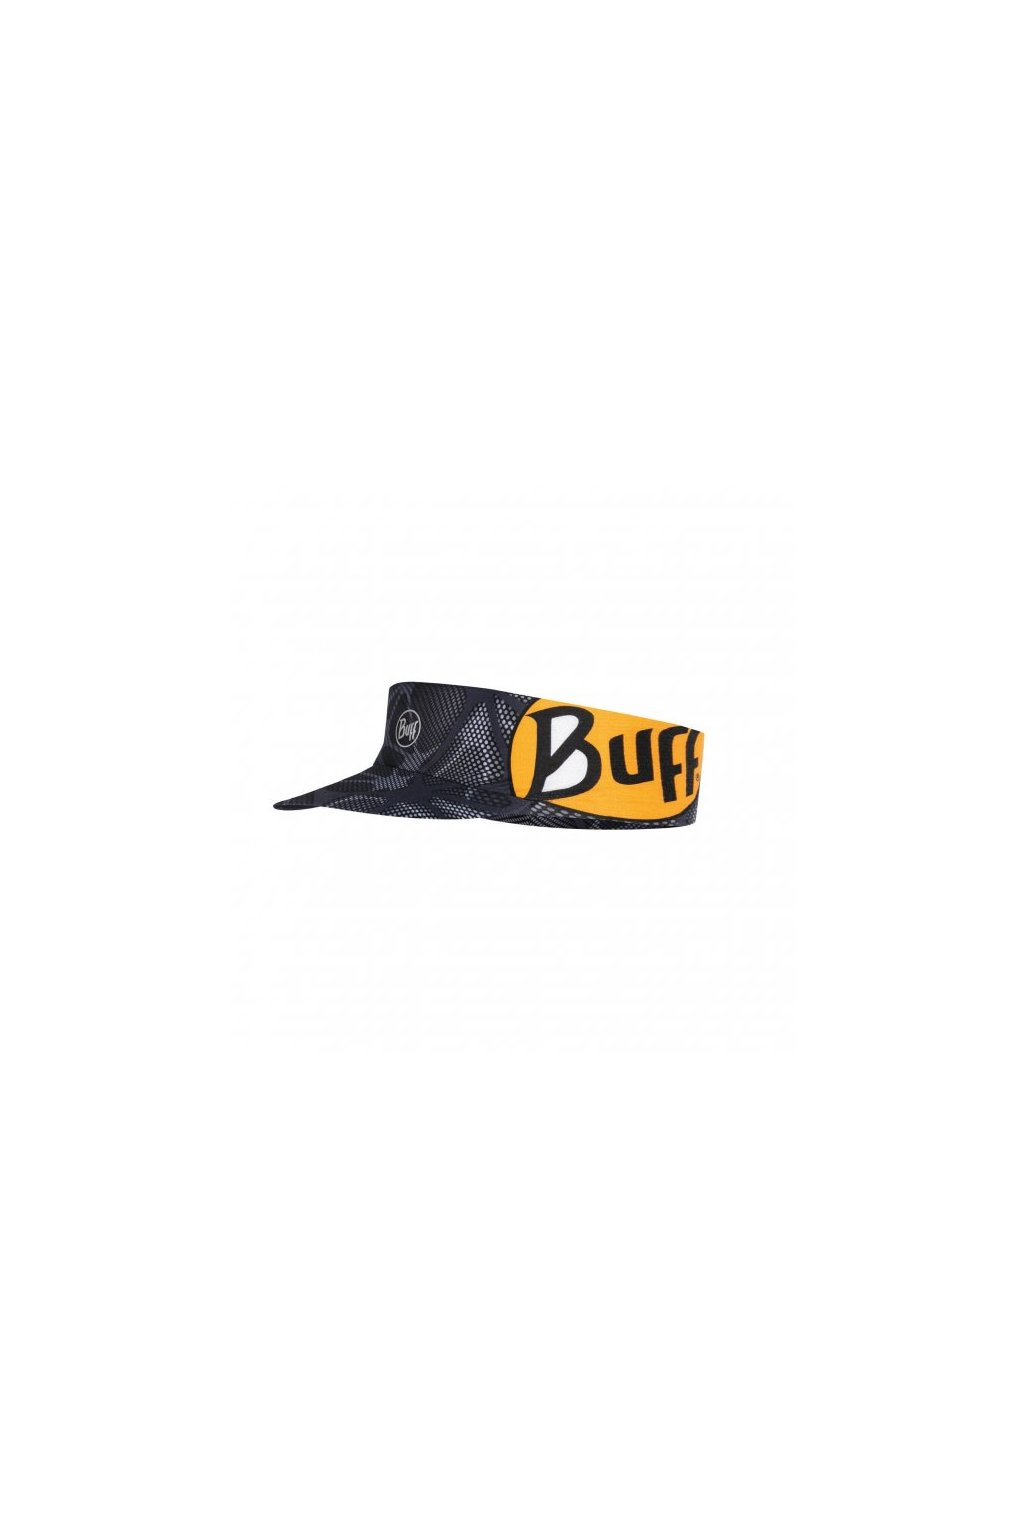 buff pro team ape x black pack run visor 1217469991000